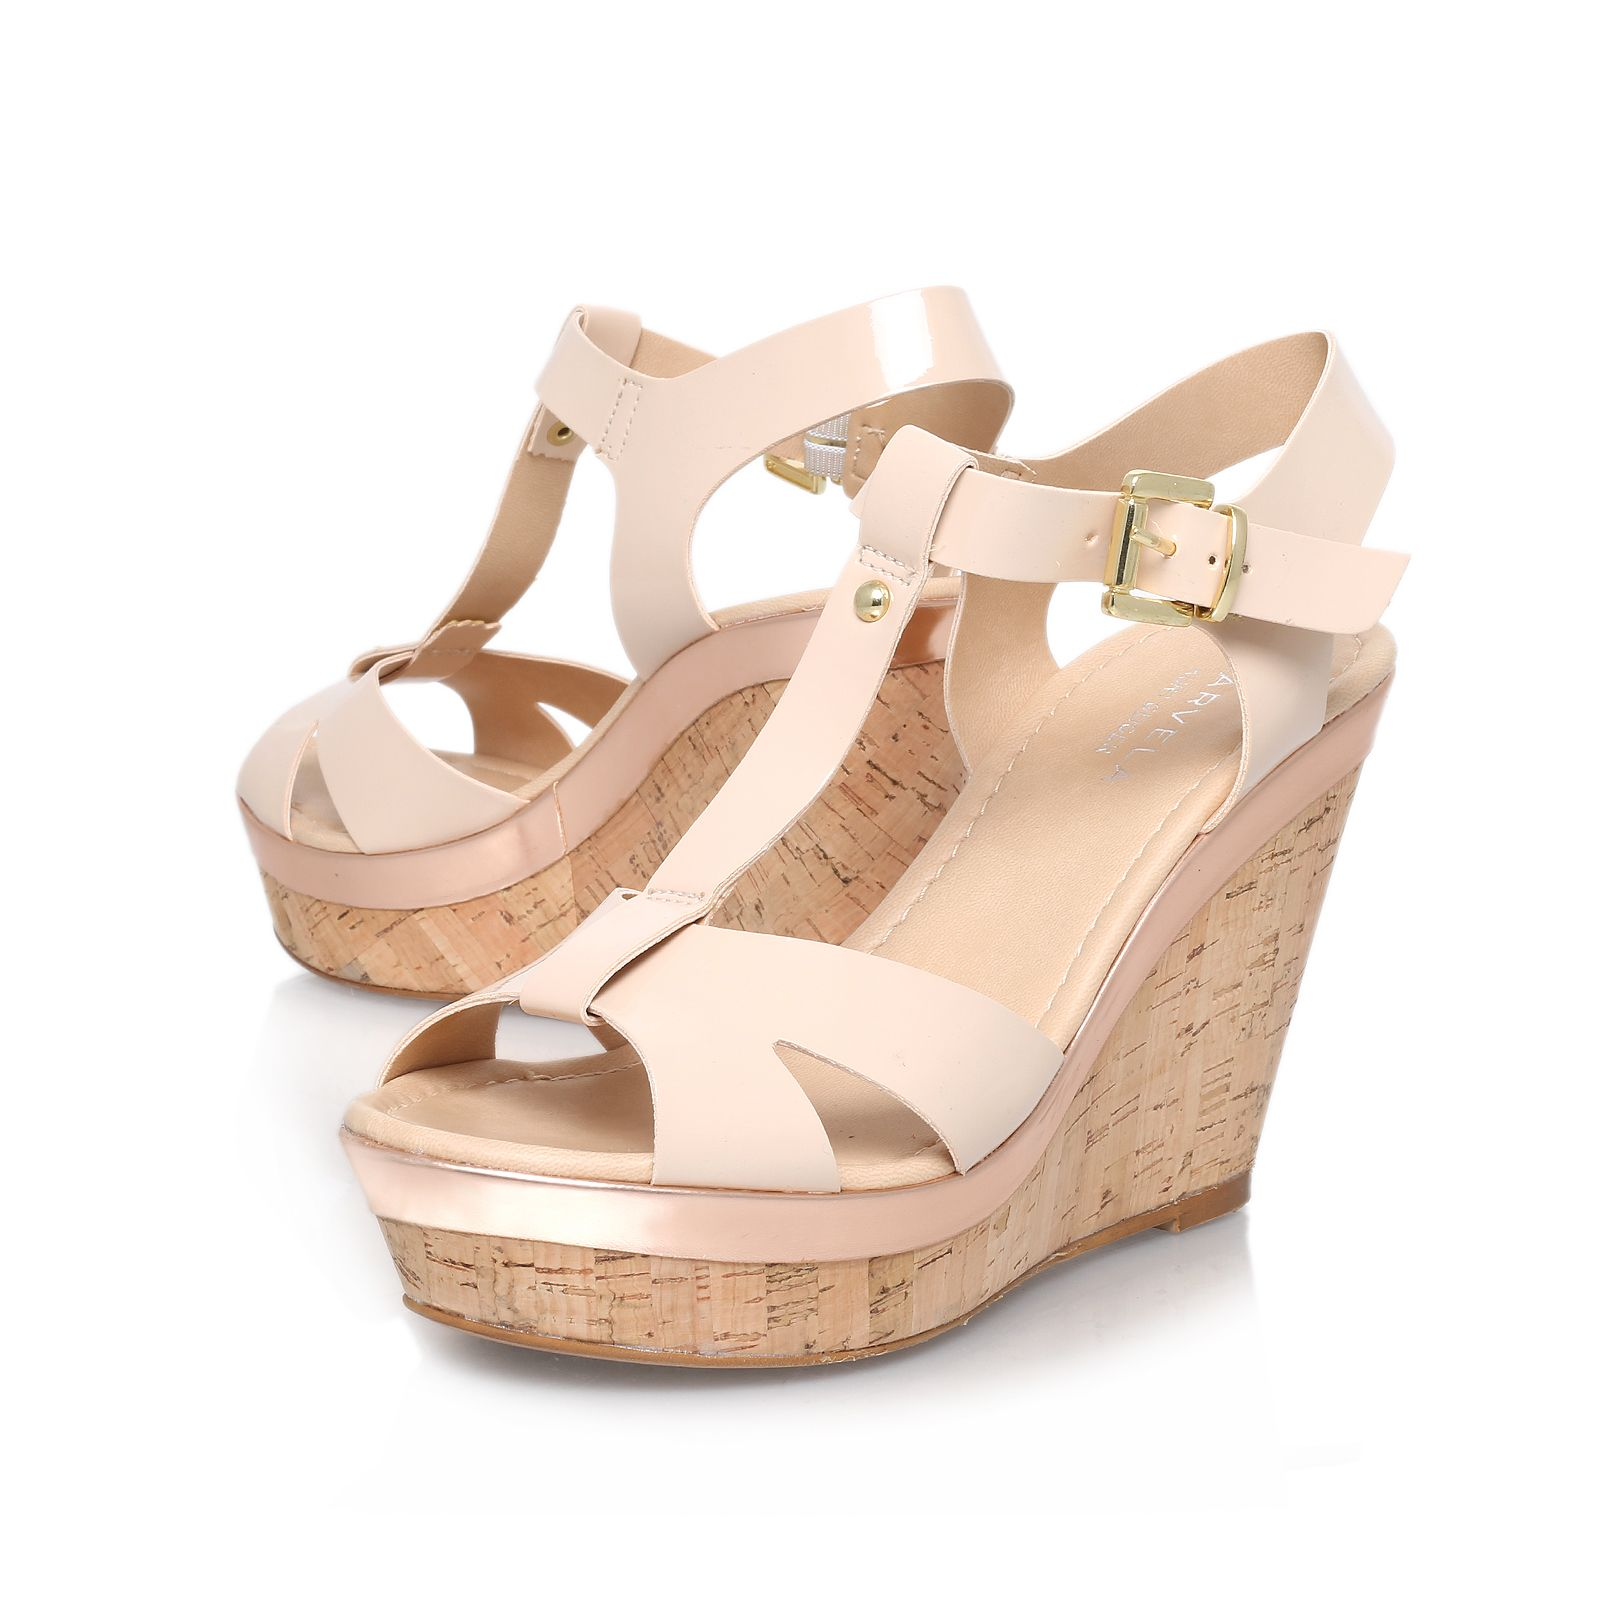 Kabby high heel wedge sandals